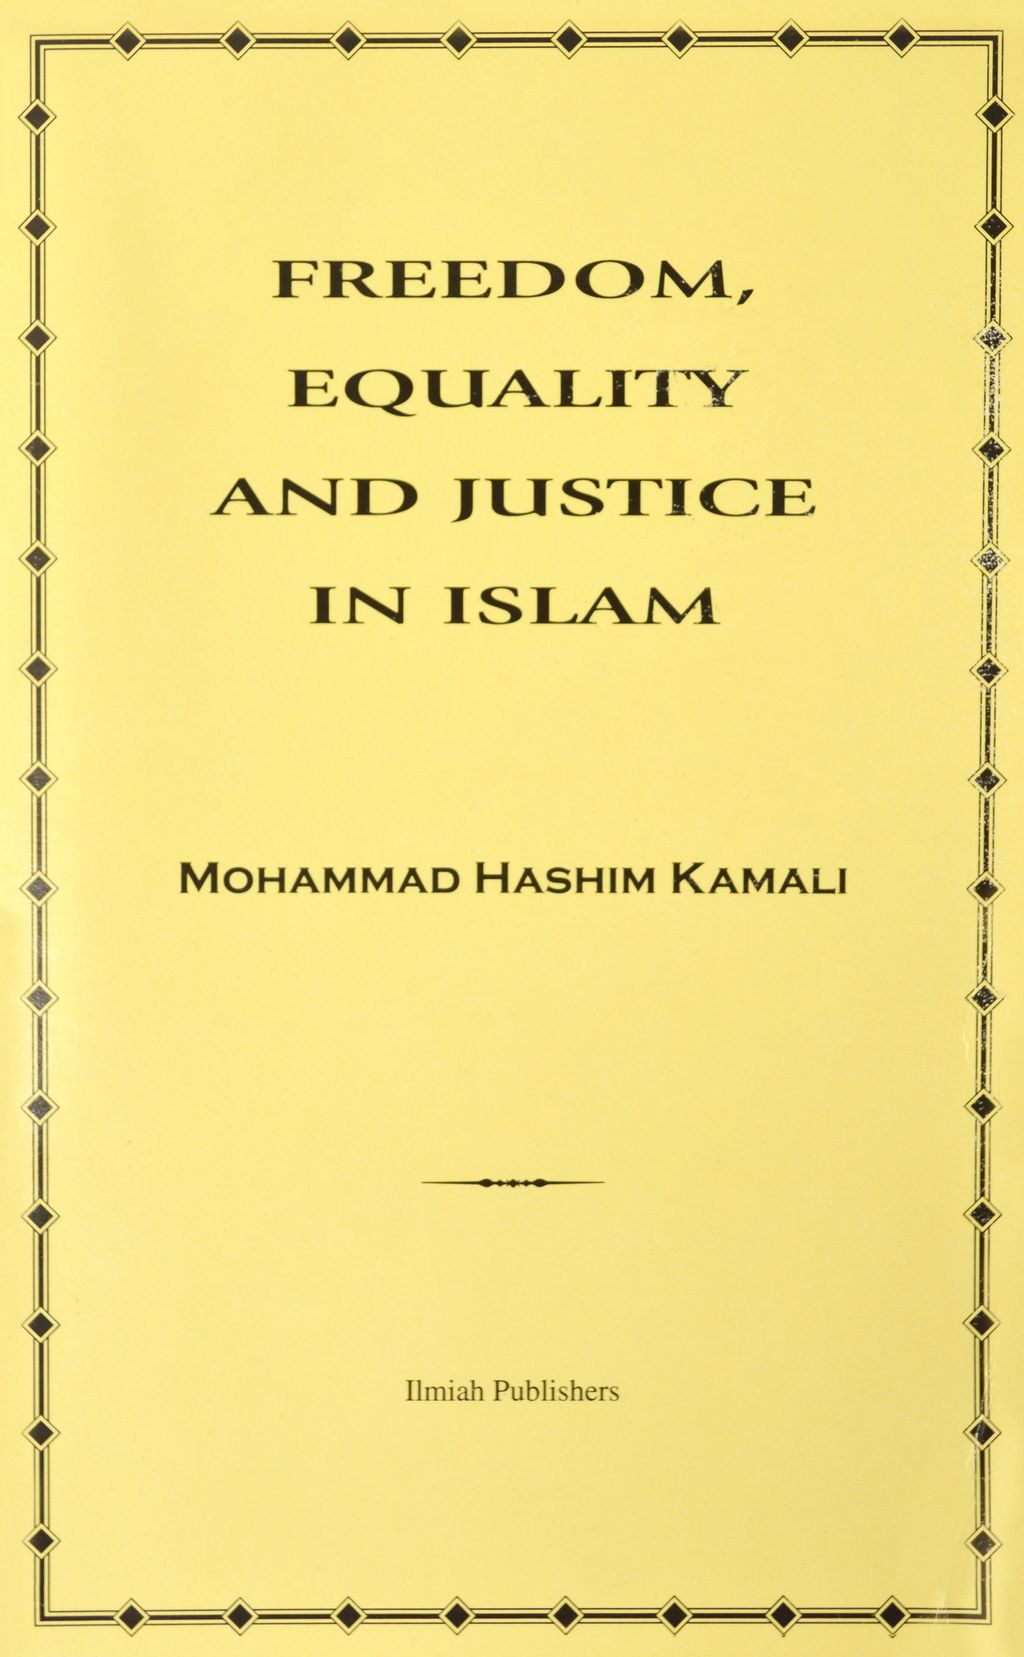 Freedom, Equality and Justice in Islam.jpg